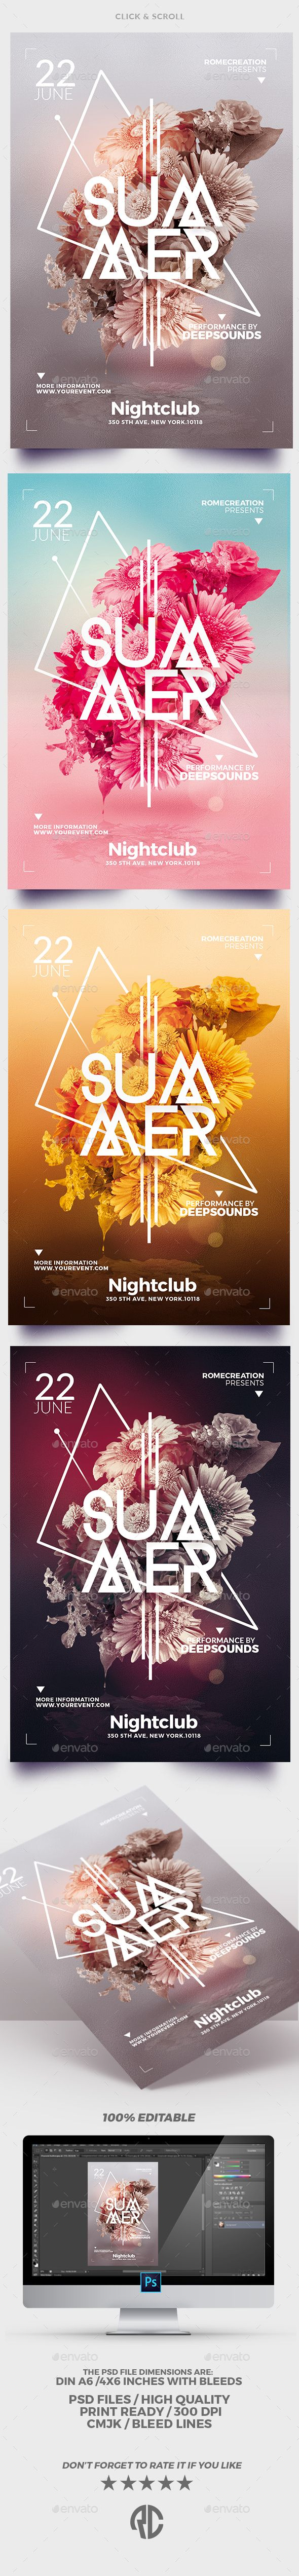 minimalst summer flyer templates - Poster Designs Ideas